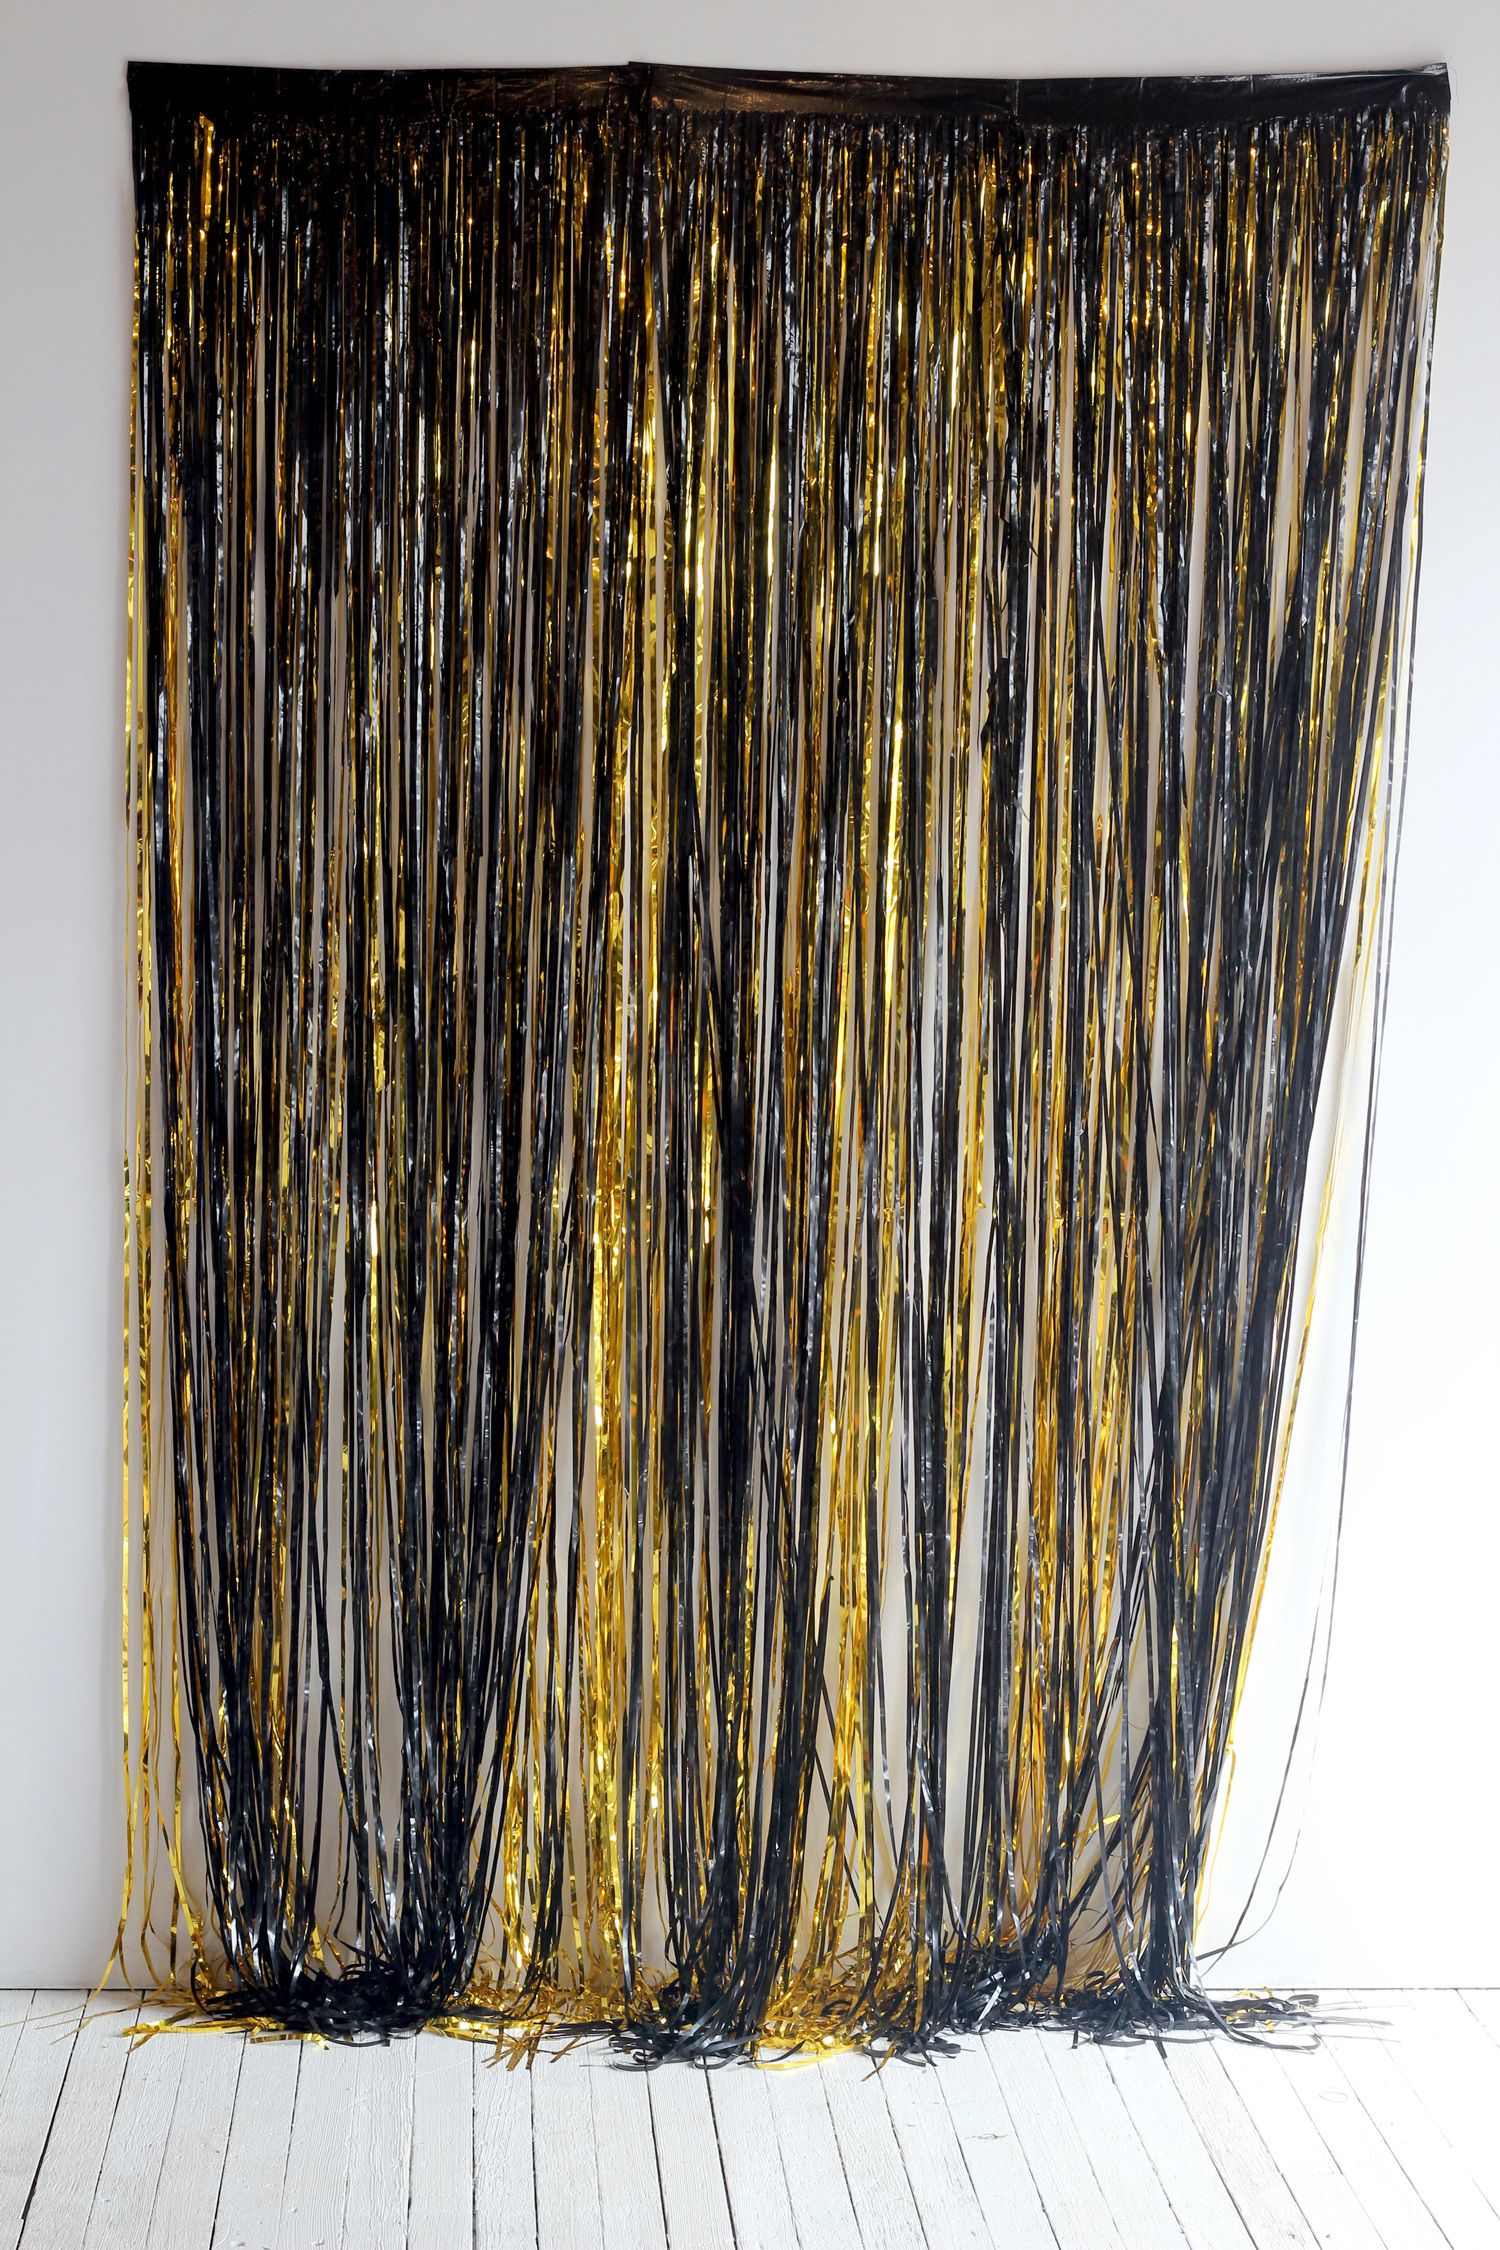 Black Fringe Curtain Burlesque Party Decorations Gatsby Themed